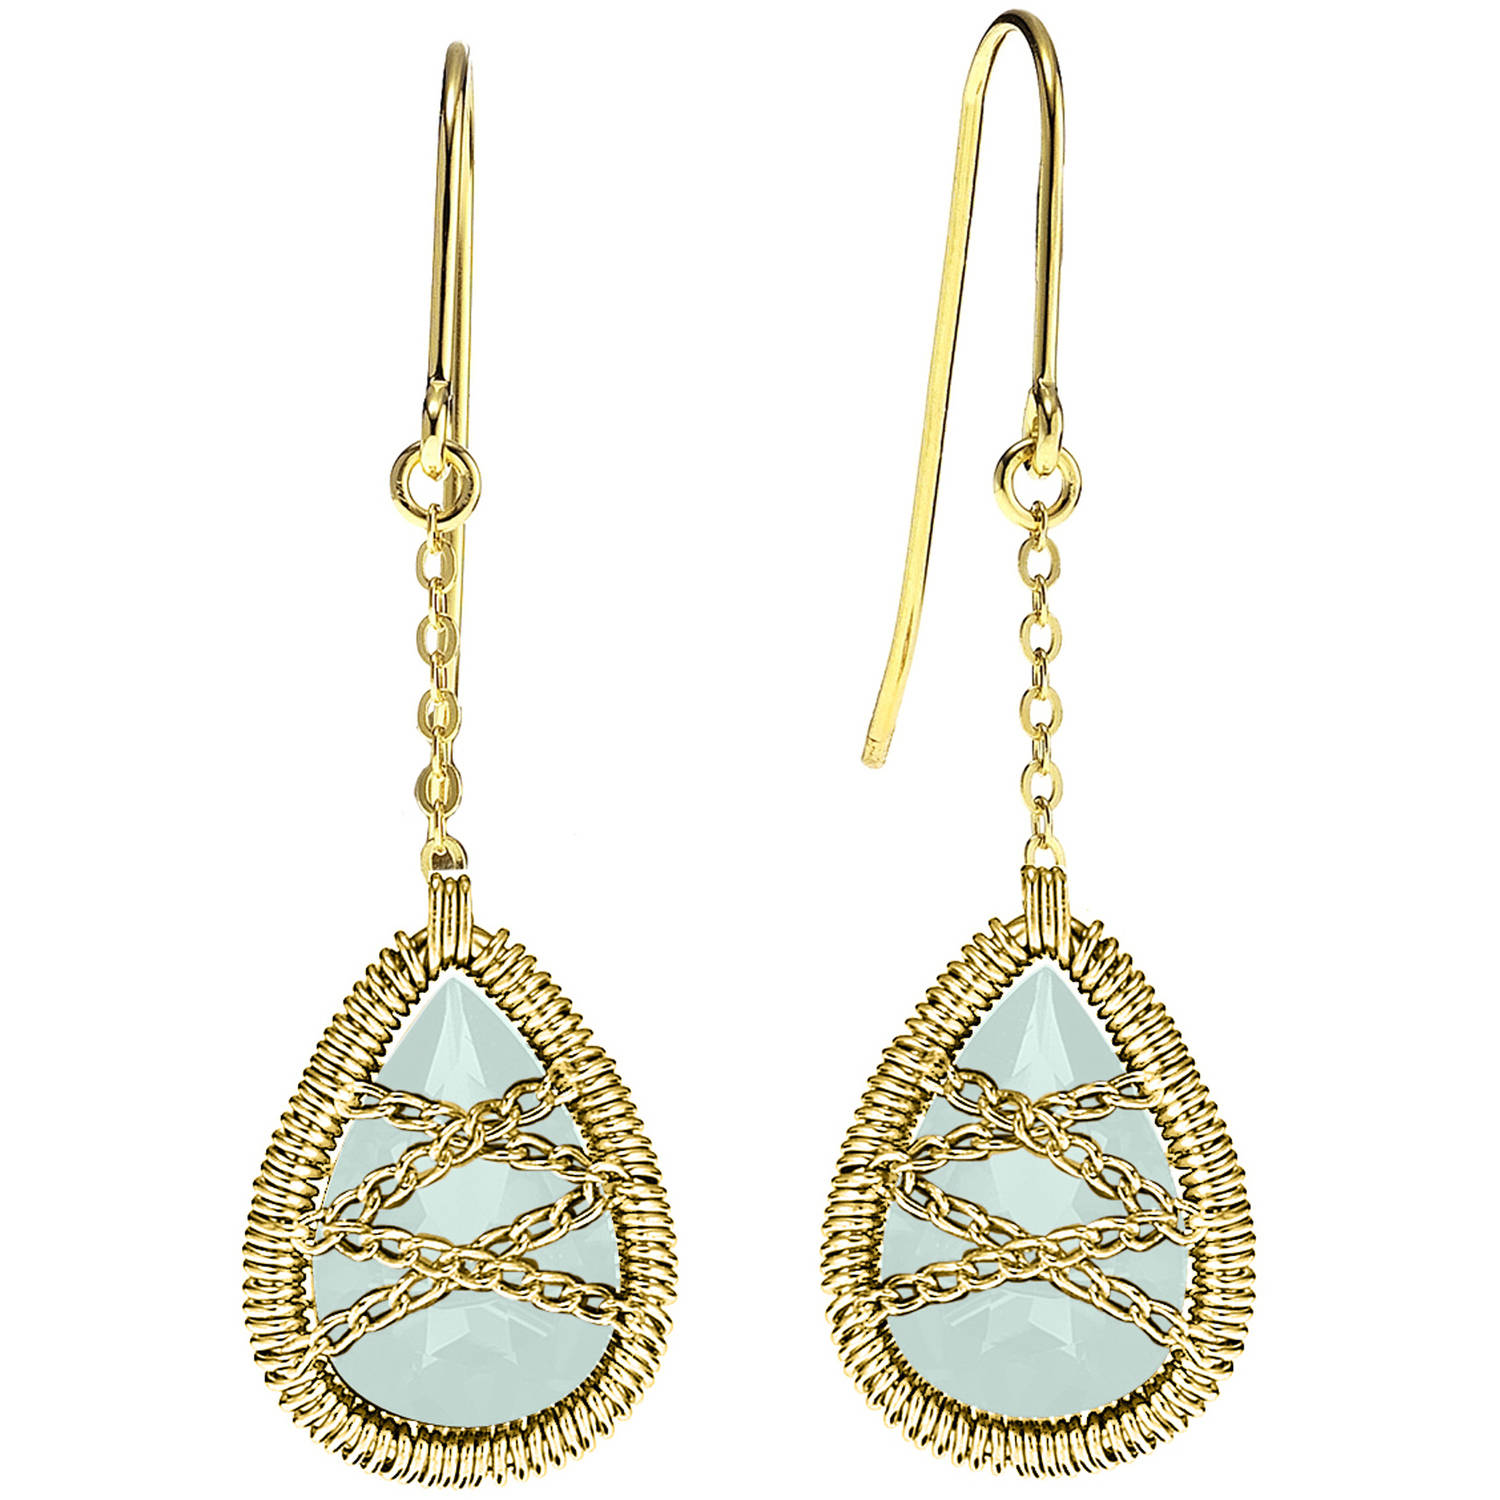 Image of 5th & Main 18kt Gold over Sterling Silver Hand-Wrapped Dangle Teardrop Chalcedony Stone Earrings